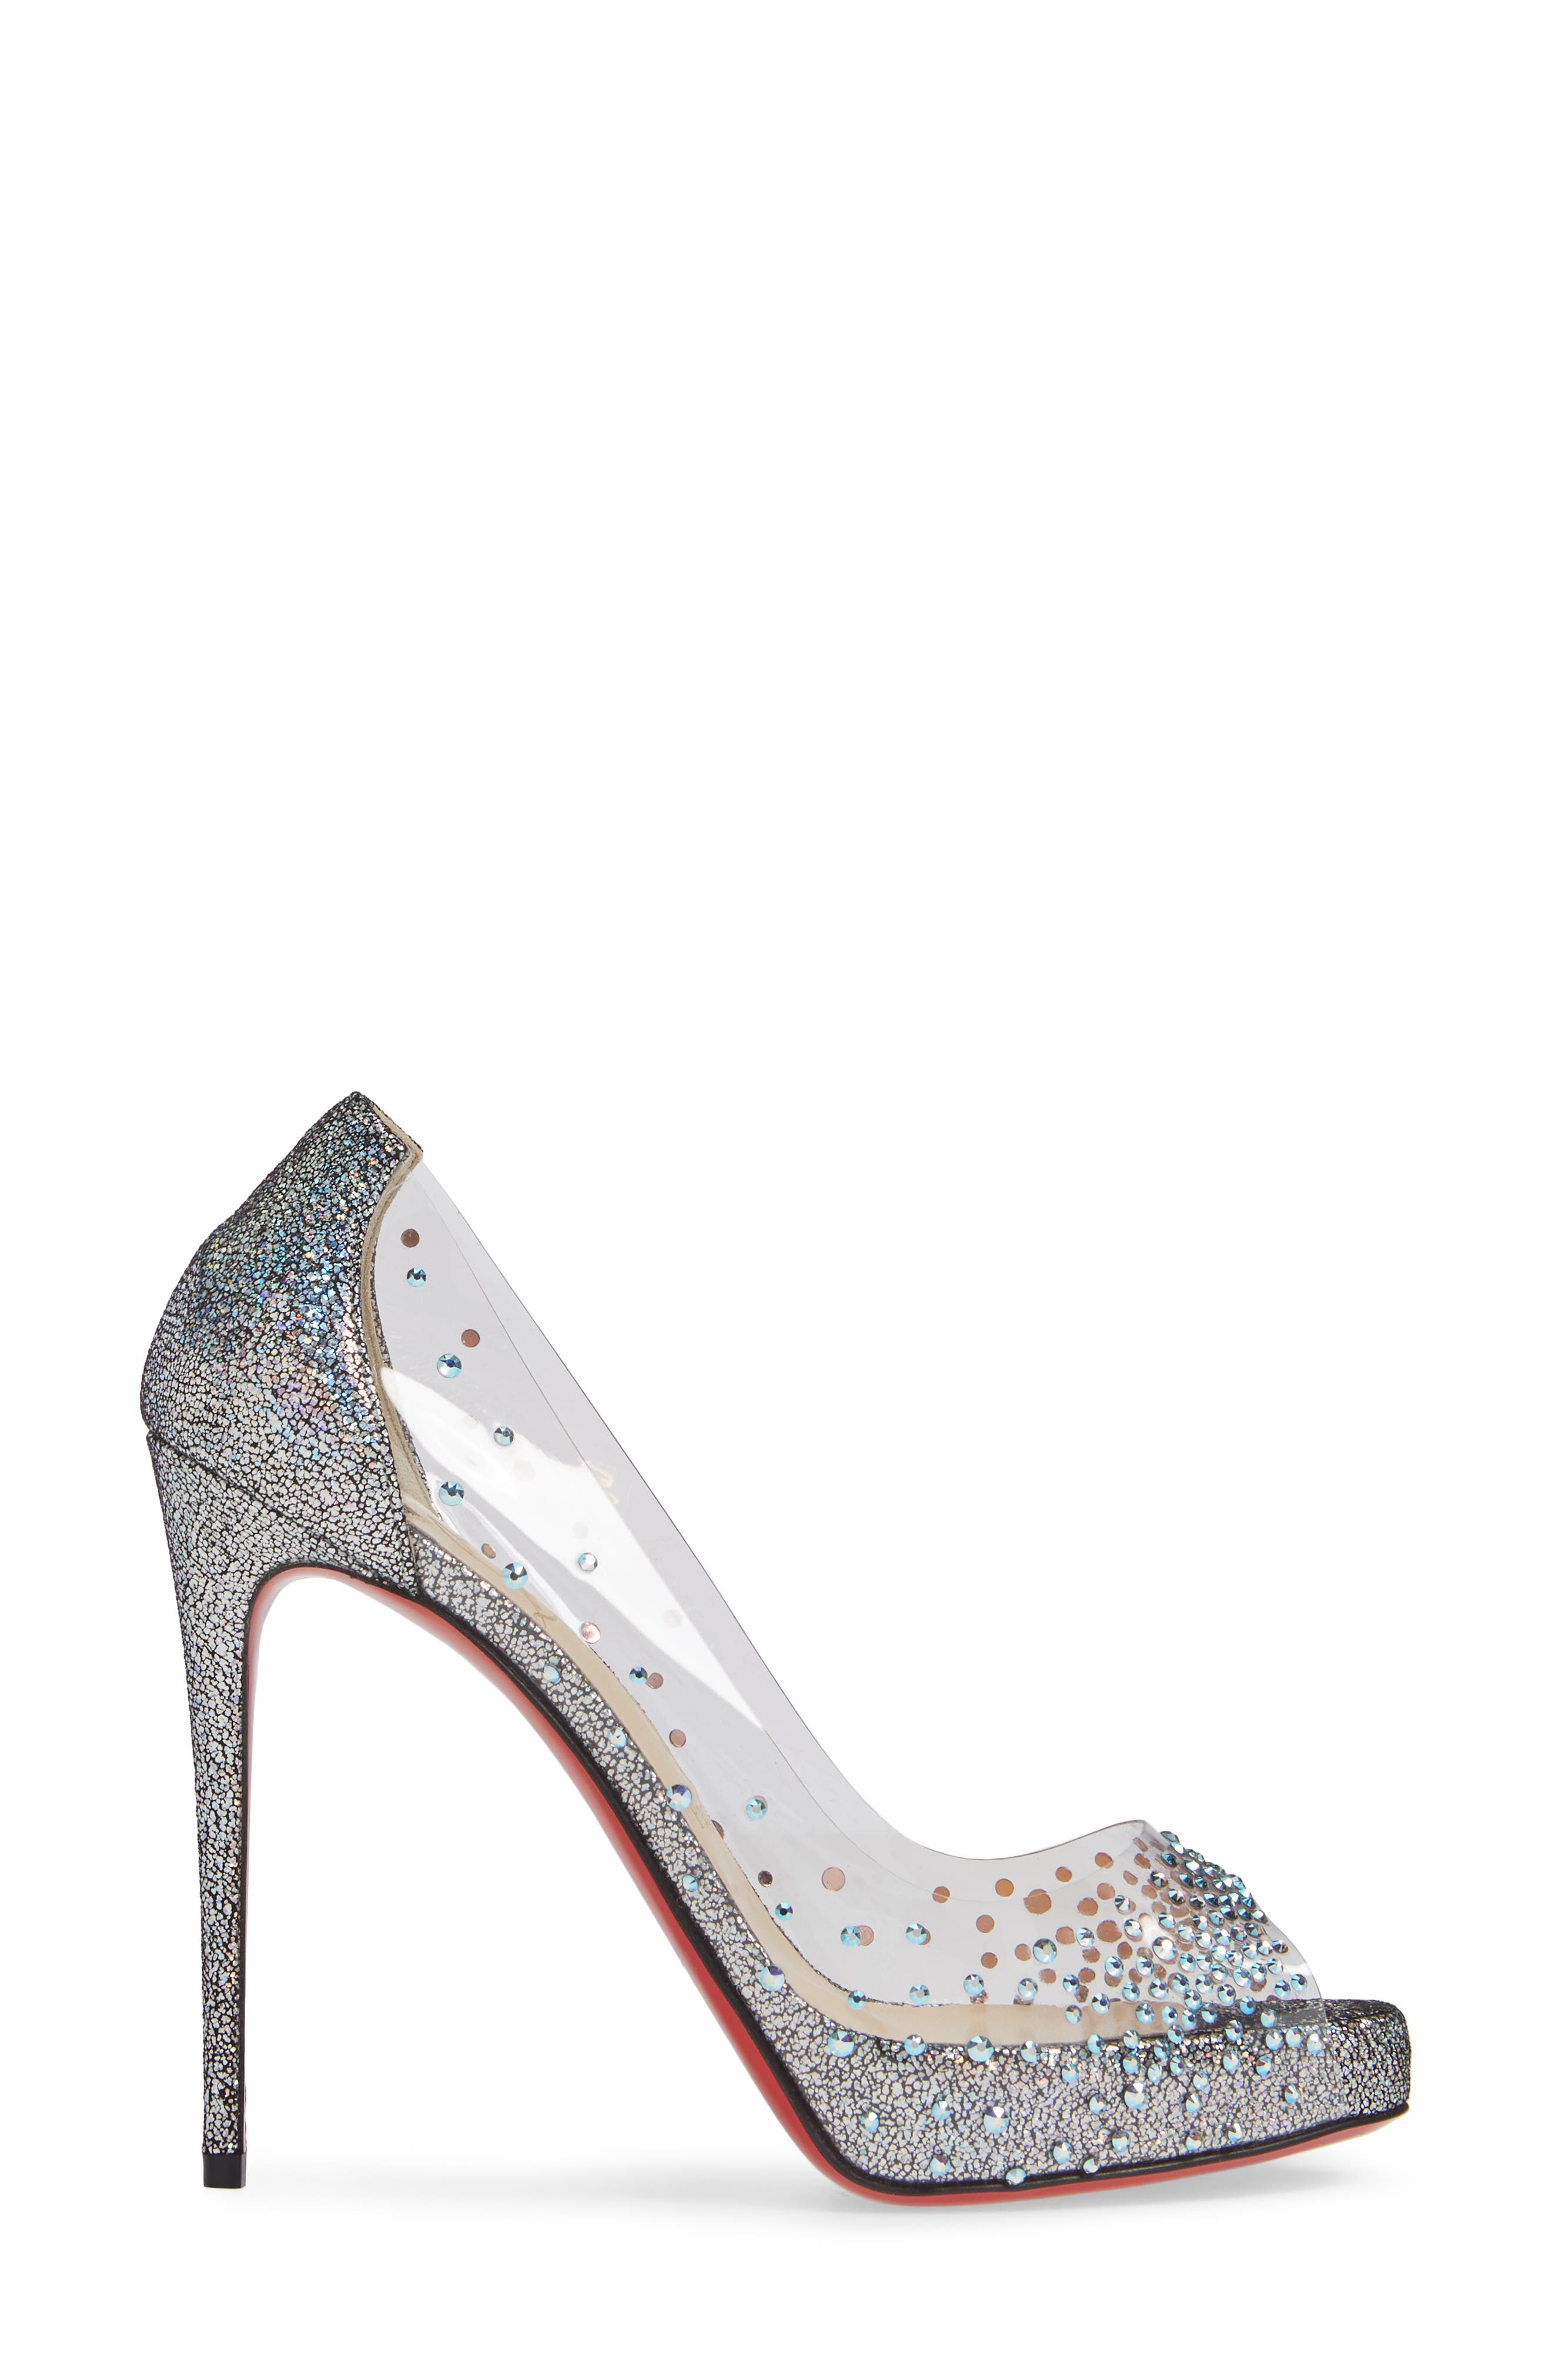 CHRISTIAN LOUBOUTIN, Very Strass Embellished Peep Toe Pump, Alternate thumbnail 3, color, SILVER